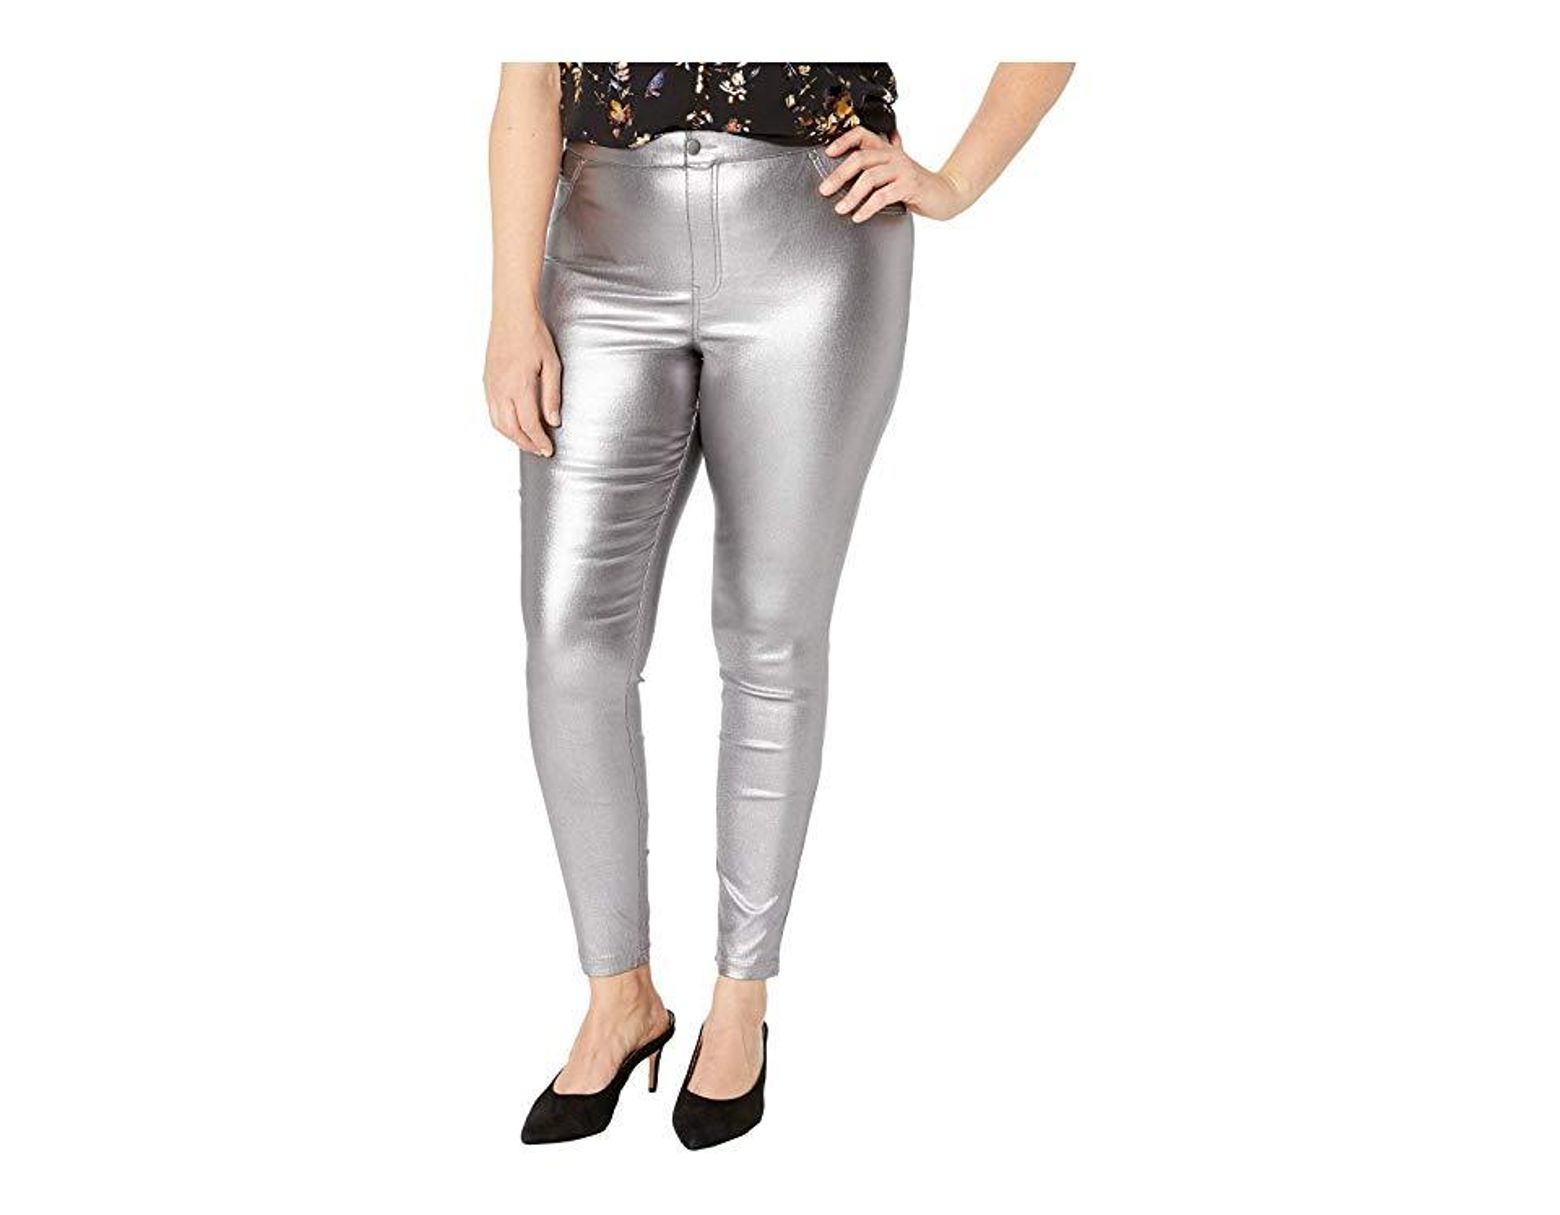 30c8036ecd7f0f Hue Plus Size Iridescent Metallic Denim Leggings (gunmetal) Jeans in Gray -  Save 39% - Lyst